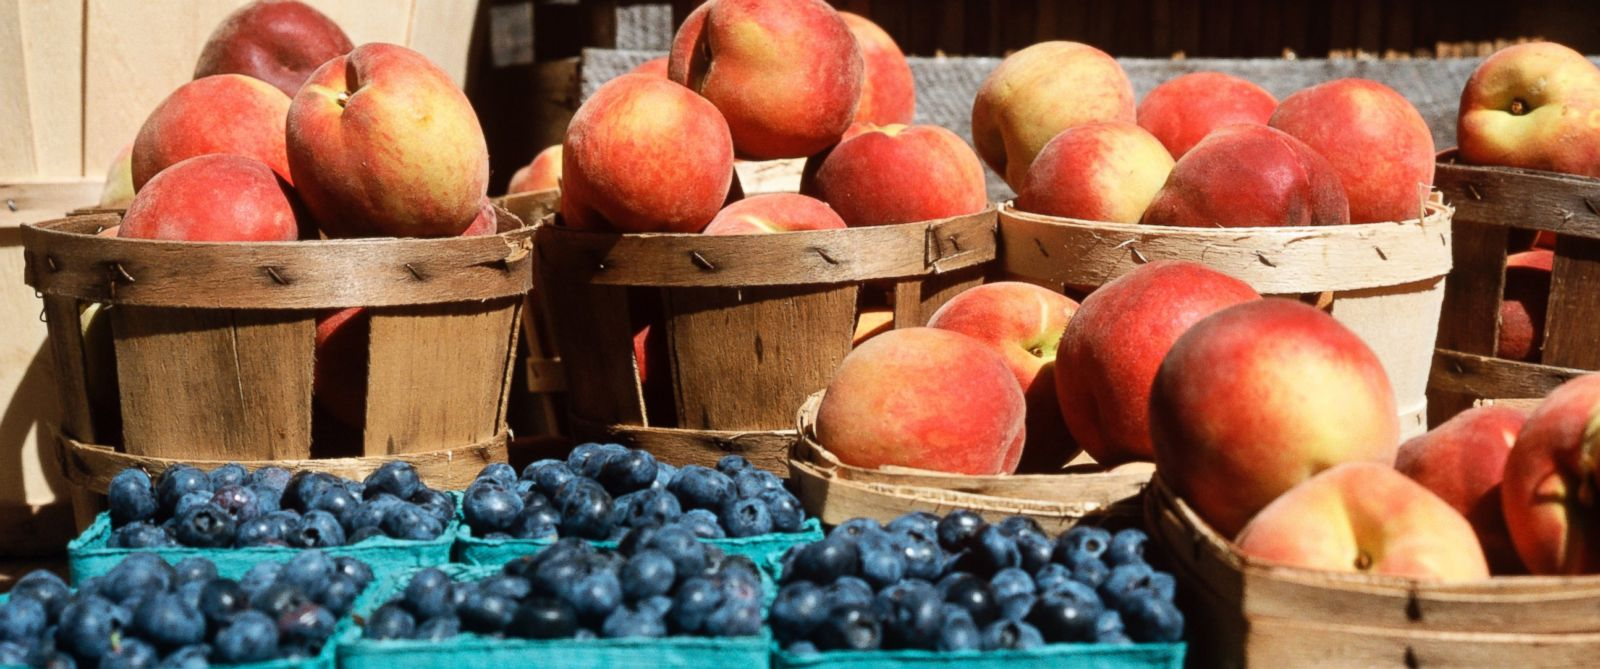 PHOTO: Blueberries and peaches at a fruit stand.